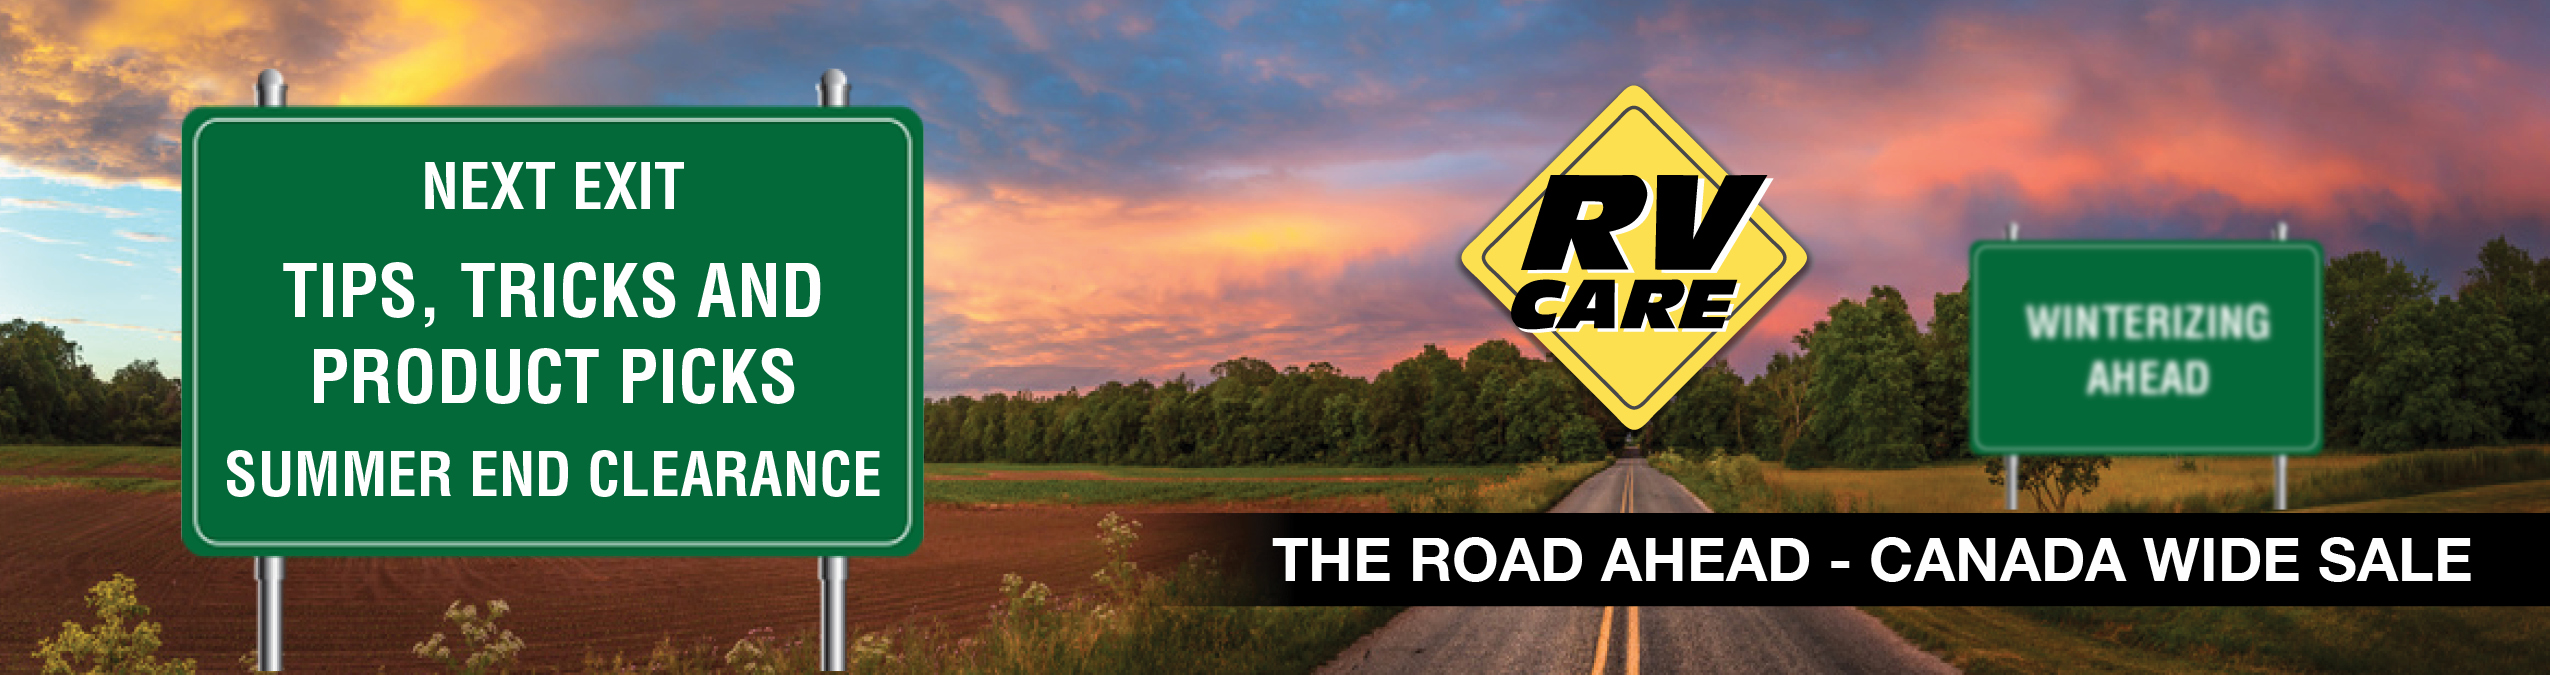 RV Care Summer End Clearance Sales Event Sept 8 to Oct 31, 2018